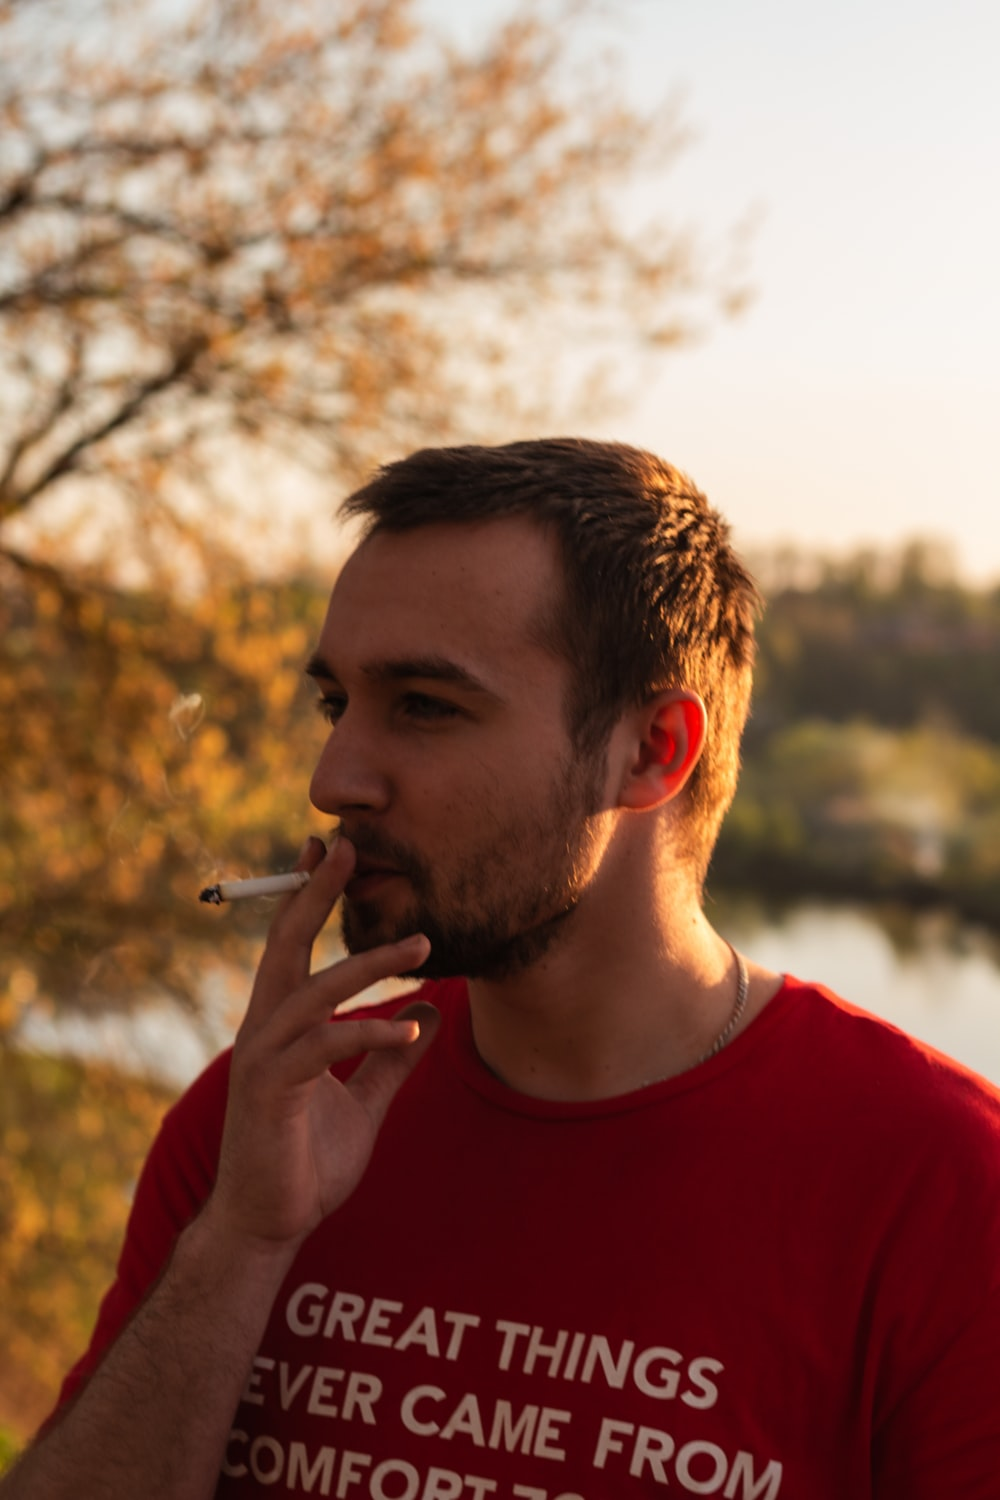 man standing smoking cigarette near body of water and trees